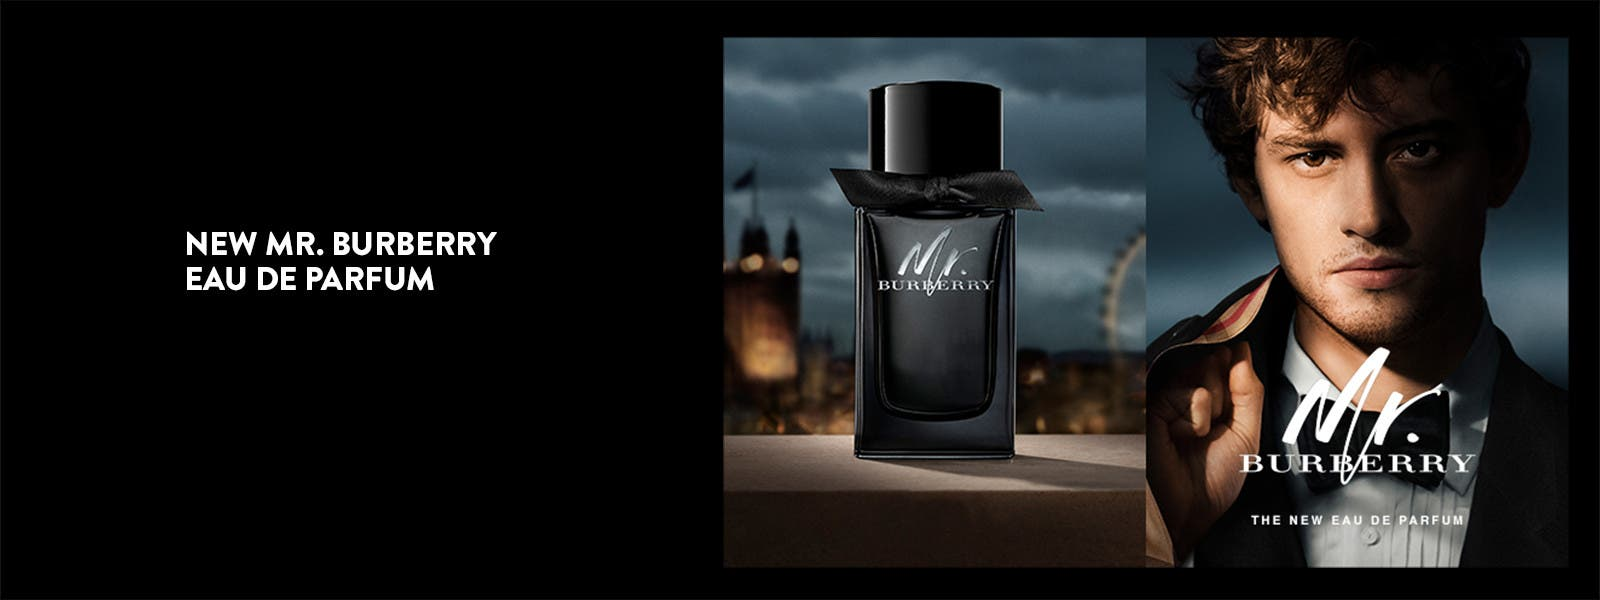 New Mr. Burberry Eau de Parfum.